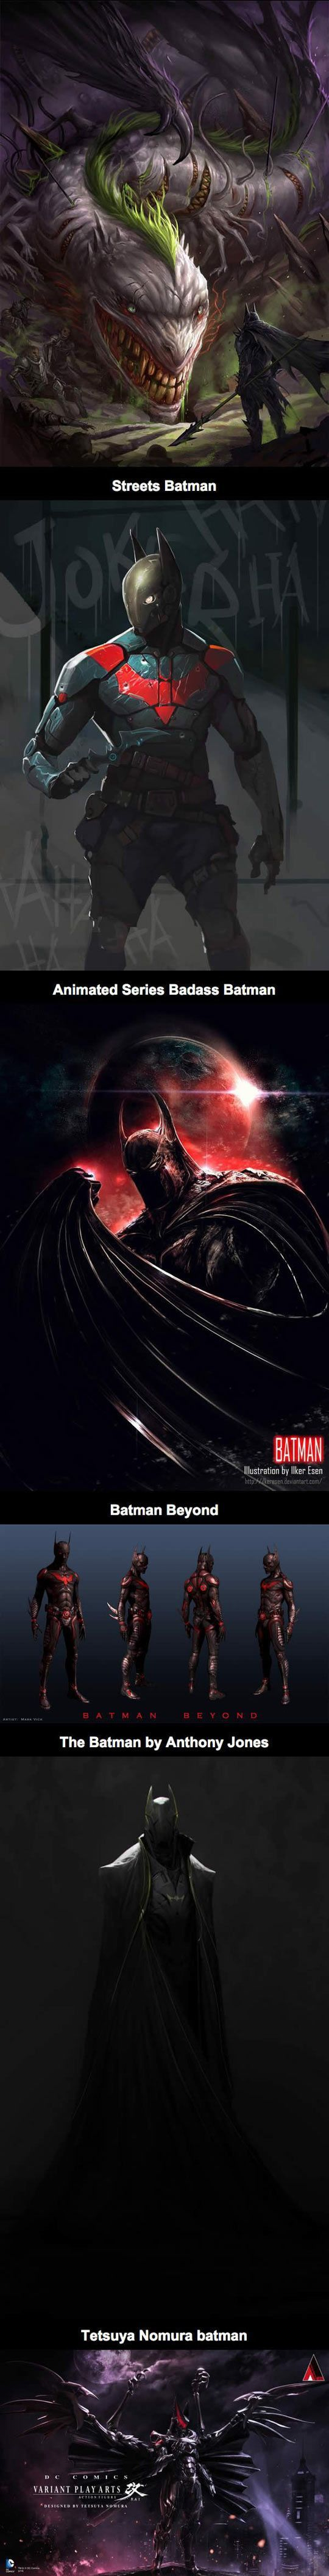 Awesome Alternate Fan Art Takes On Batman - The Meta Picture: